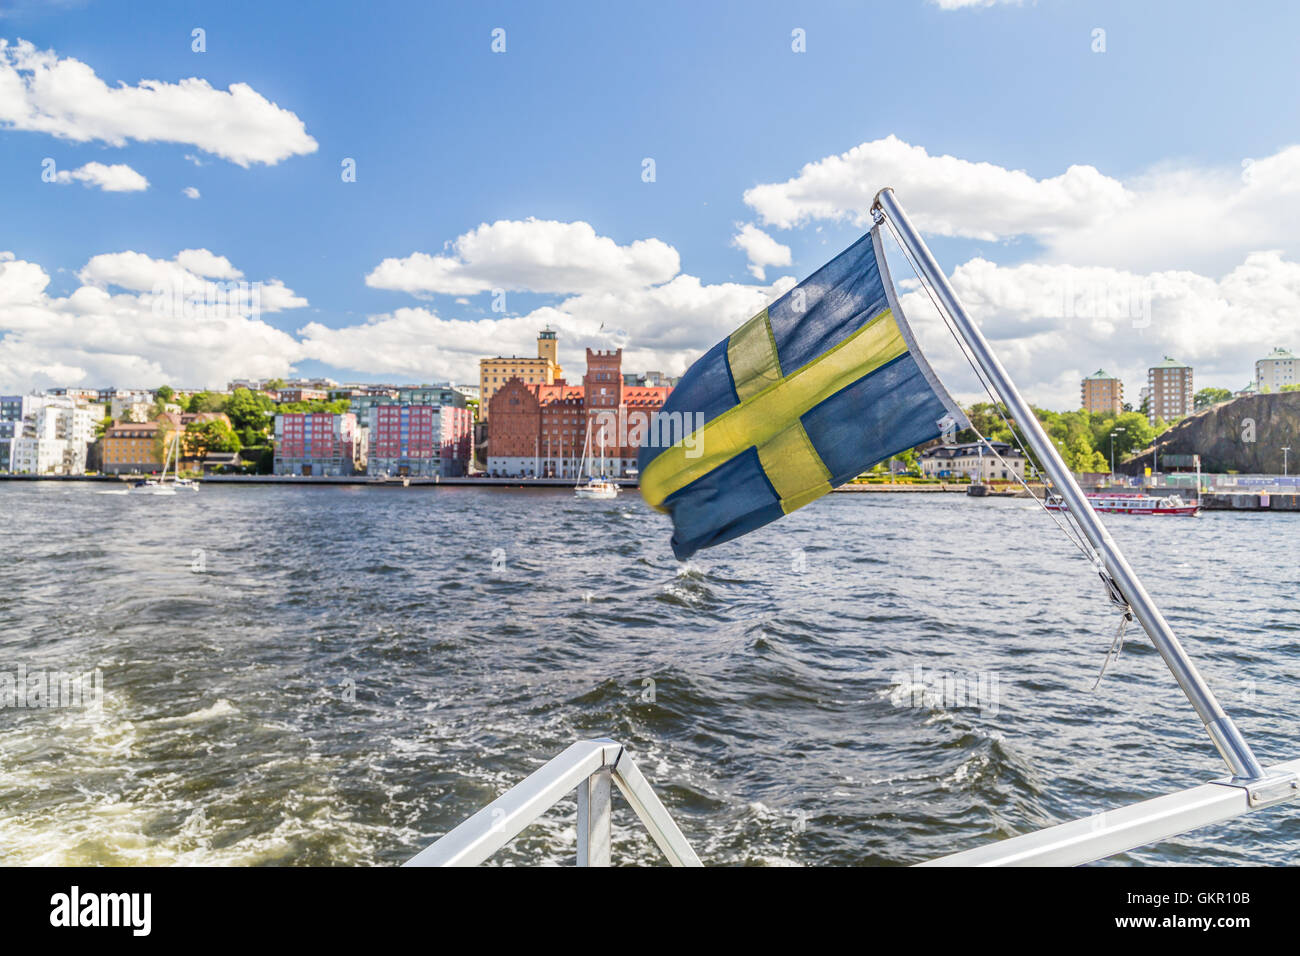 Sweden - Stock Image